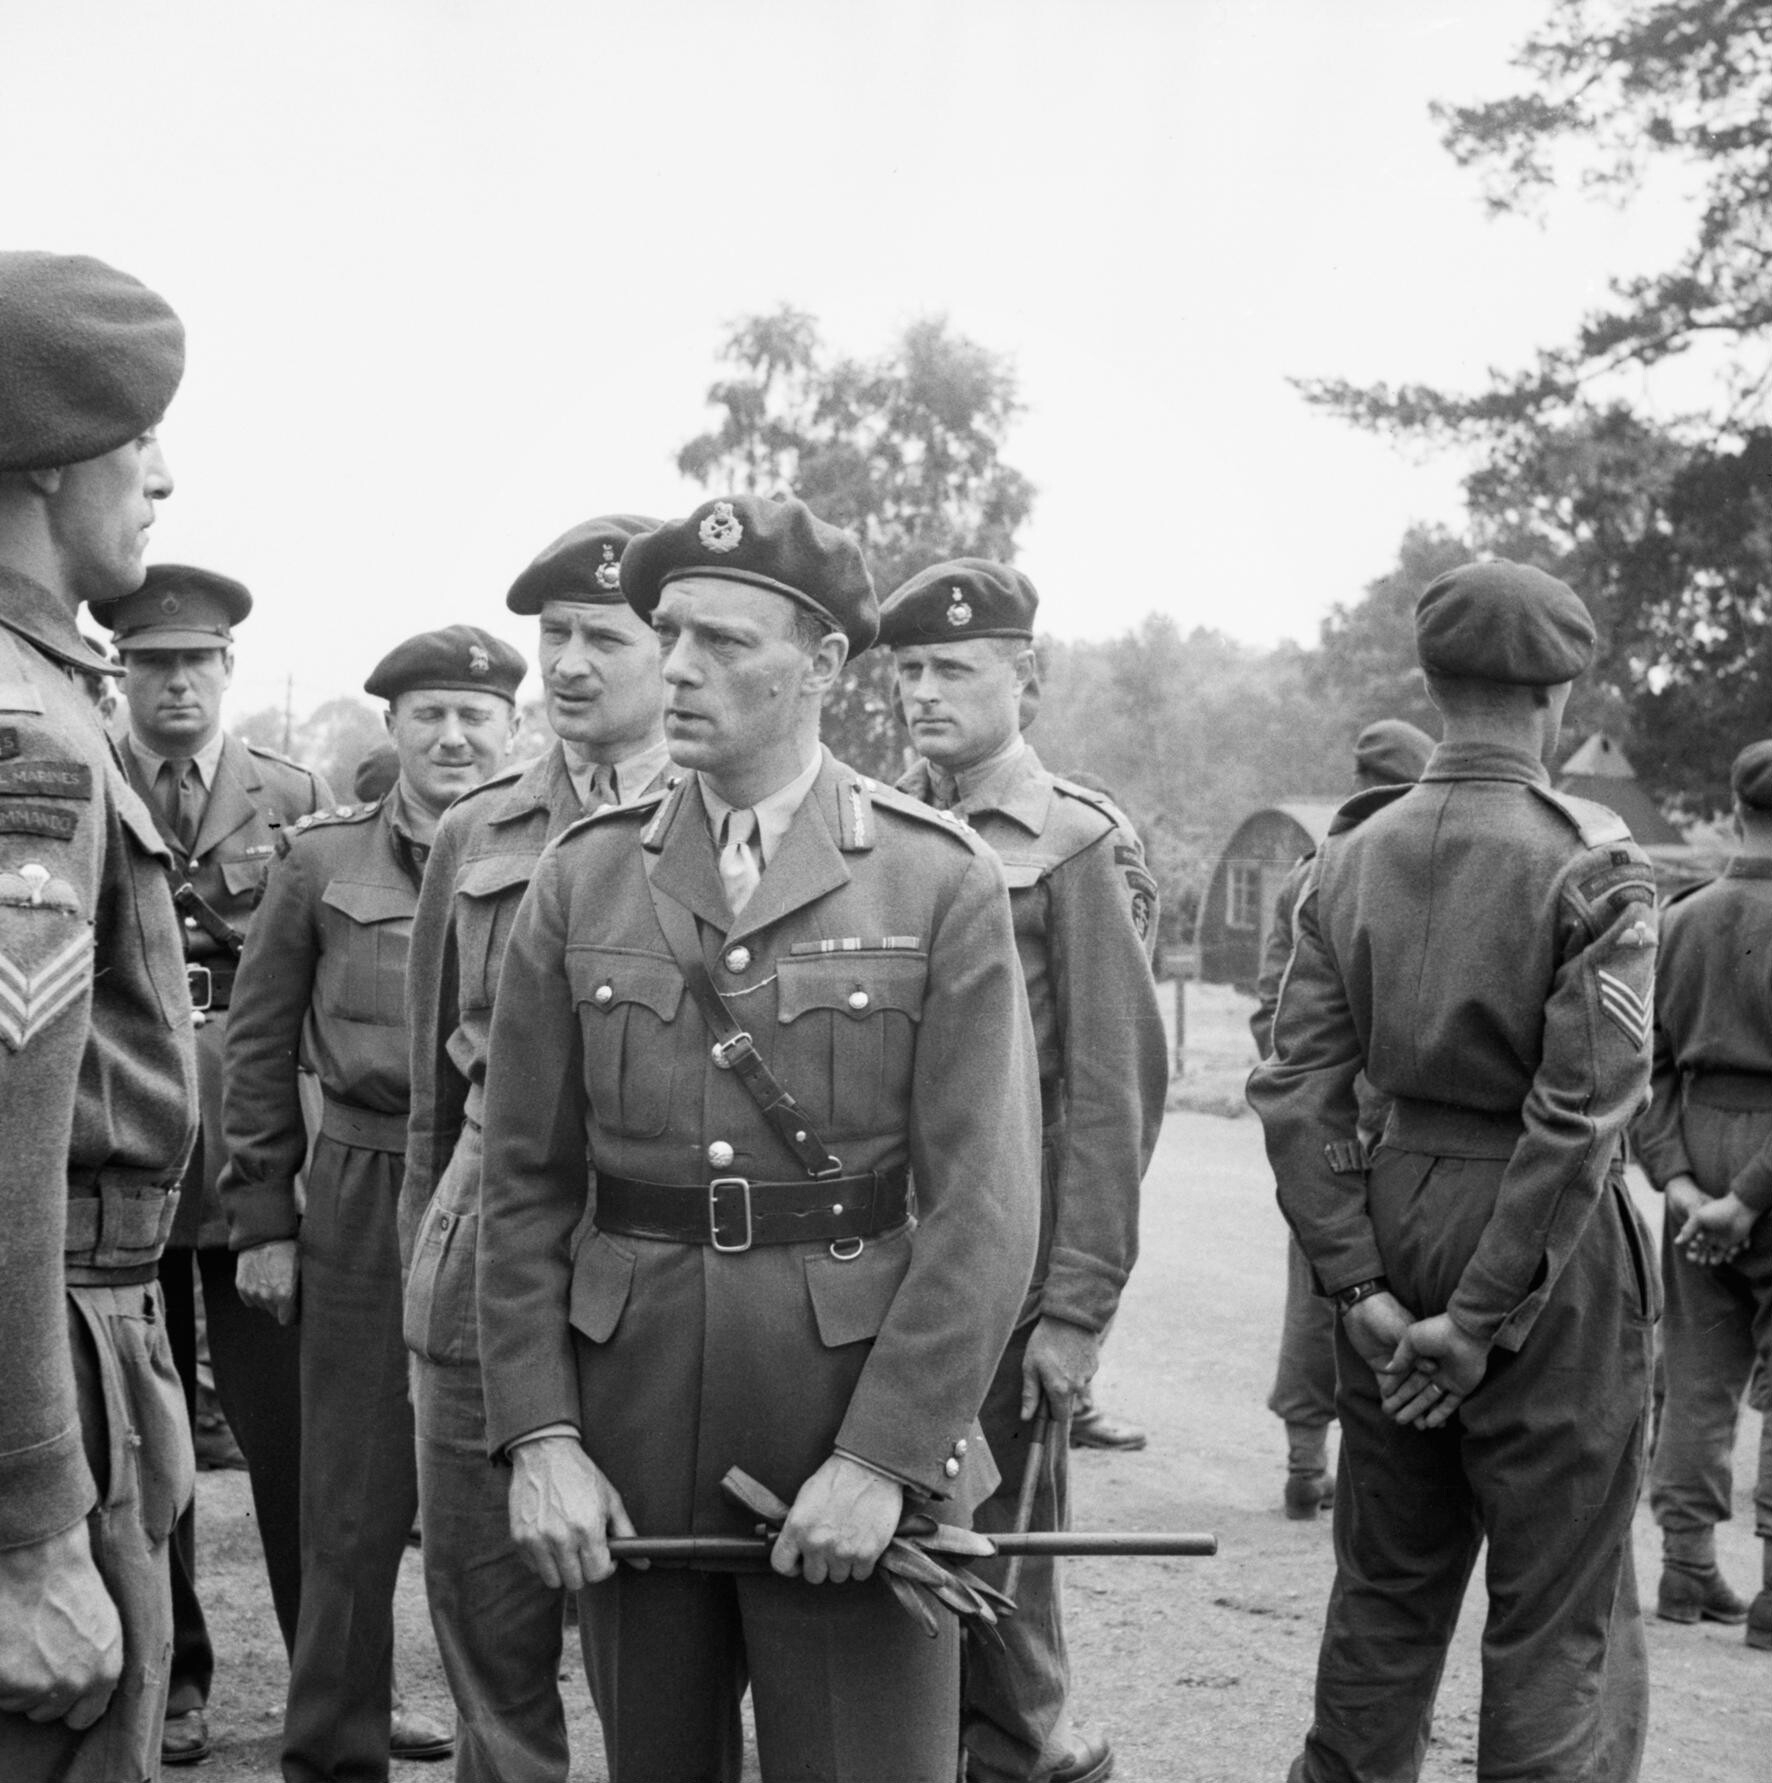 General officer with gloves and cane in hand, talking to a sergeant, surrounded by other officers and men